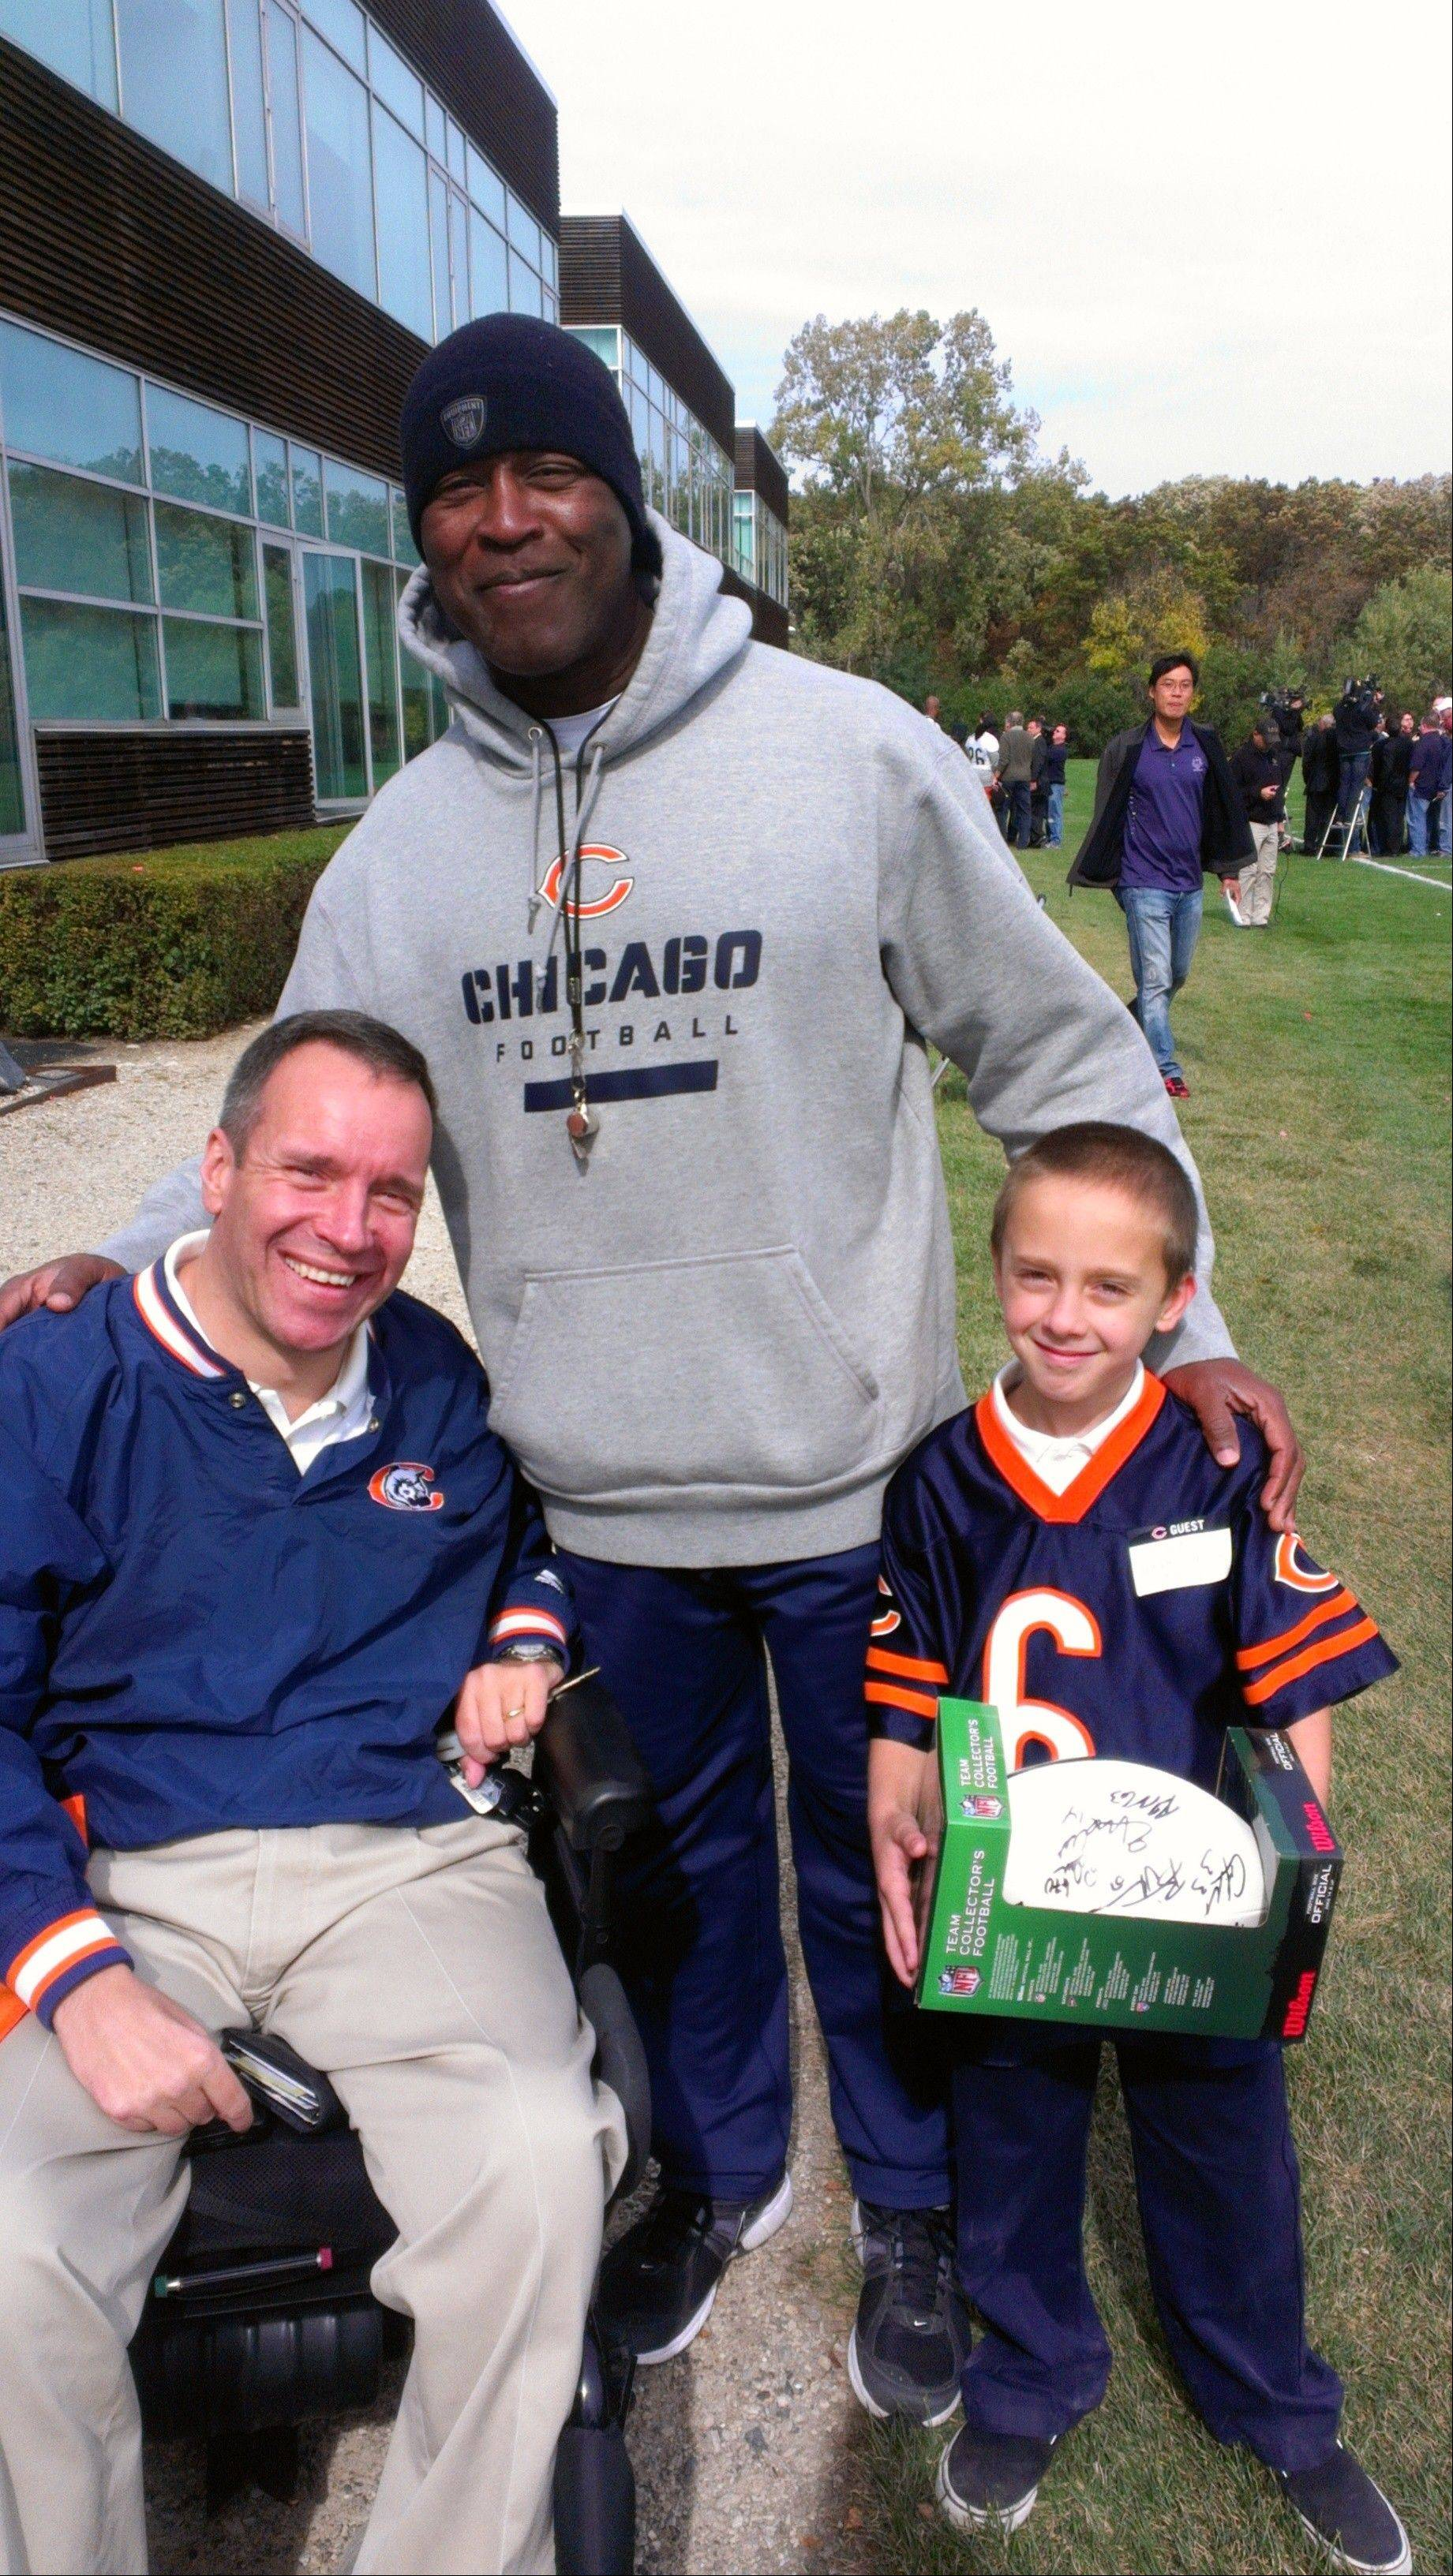 Chicago Bears Coach Lovie Smith, center, lends support to Gridiron Alliance board member Steve Herbst and his son, Jack, of Palatine. Injured in a football practice 32 years ago, Herbst is on the board of the charity, which advocates for athletes with catastrophic injuries.